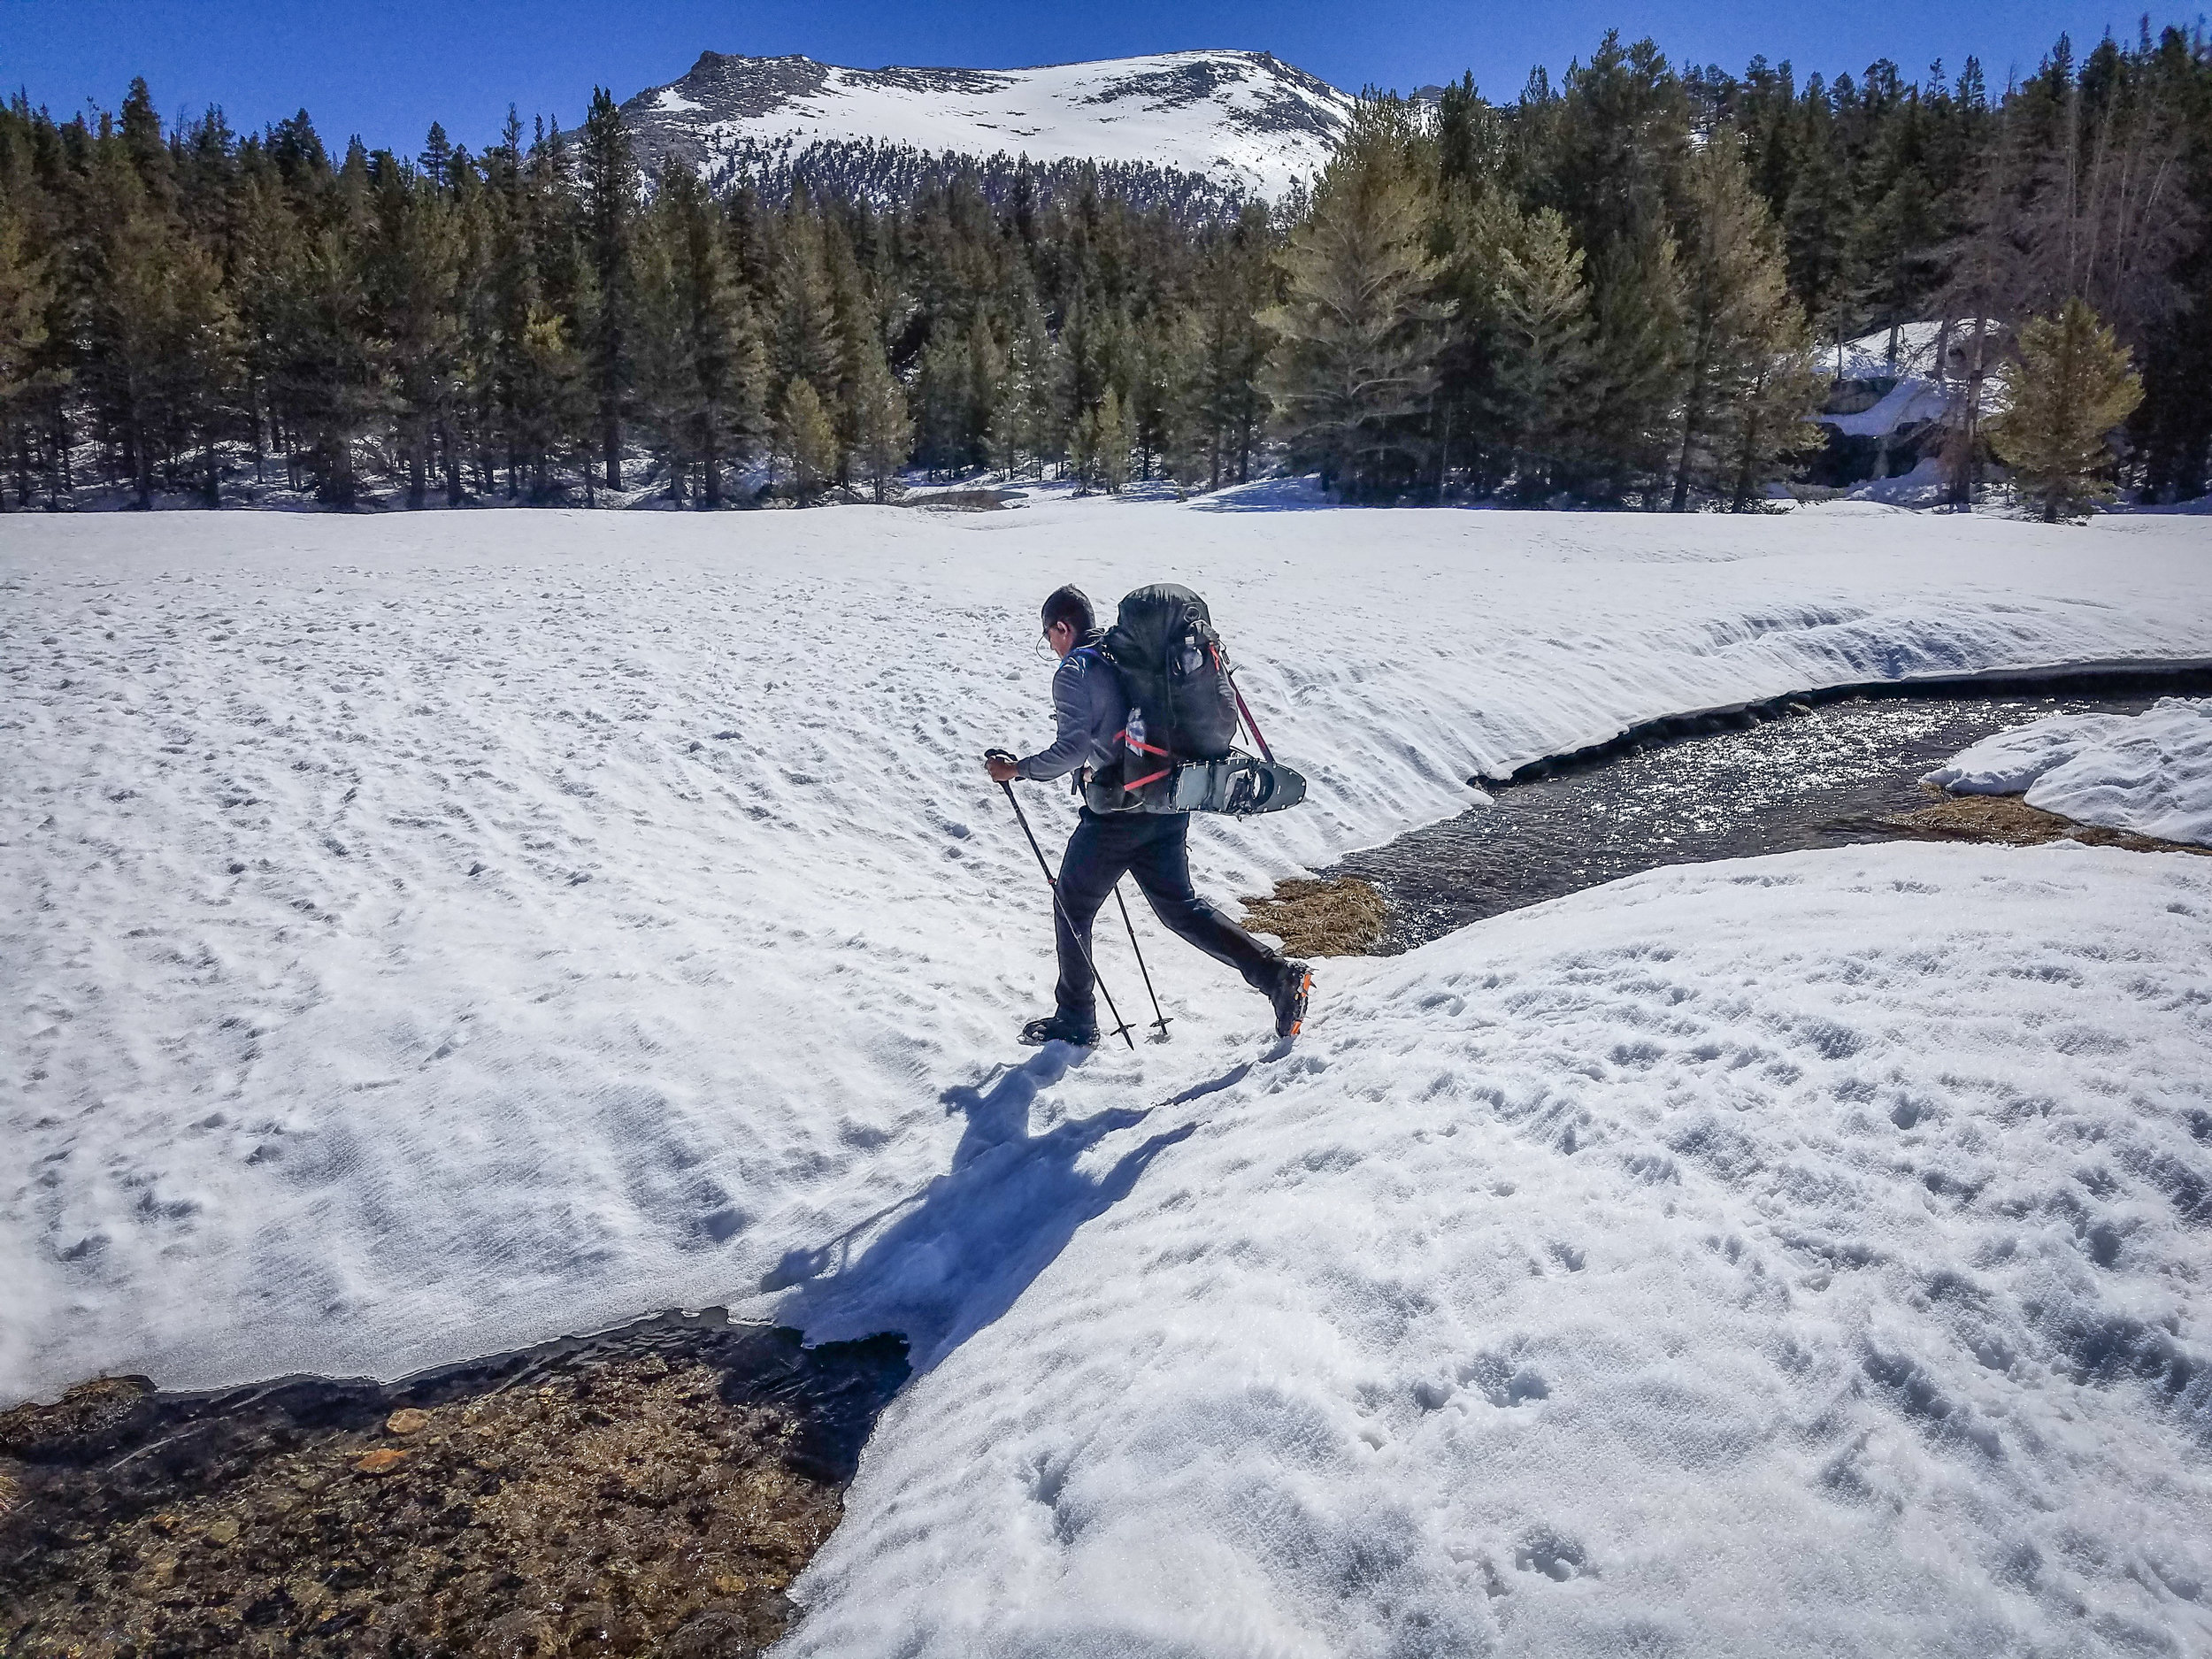 Ahh snowbridges. You can keep your water to yourself, Sierra!